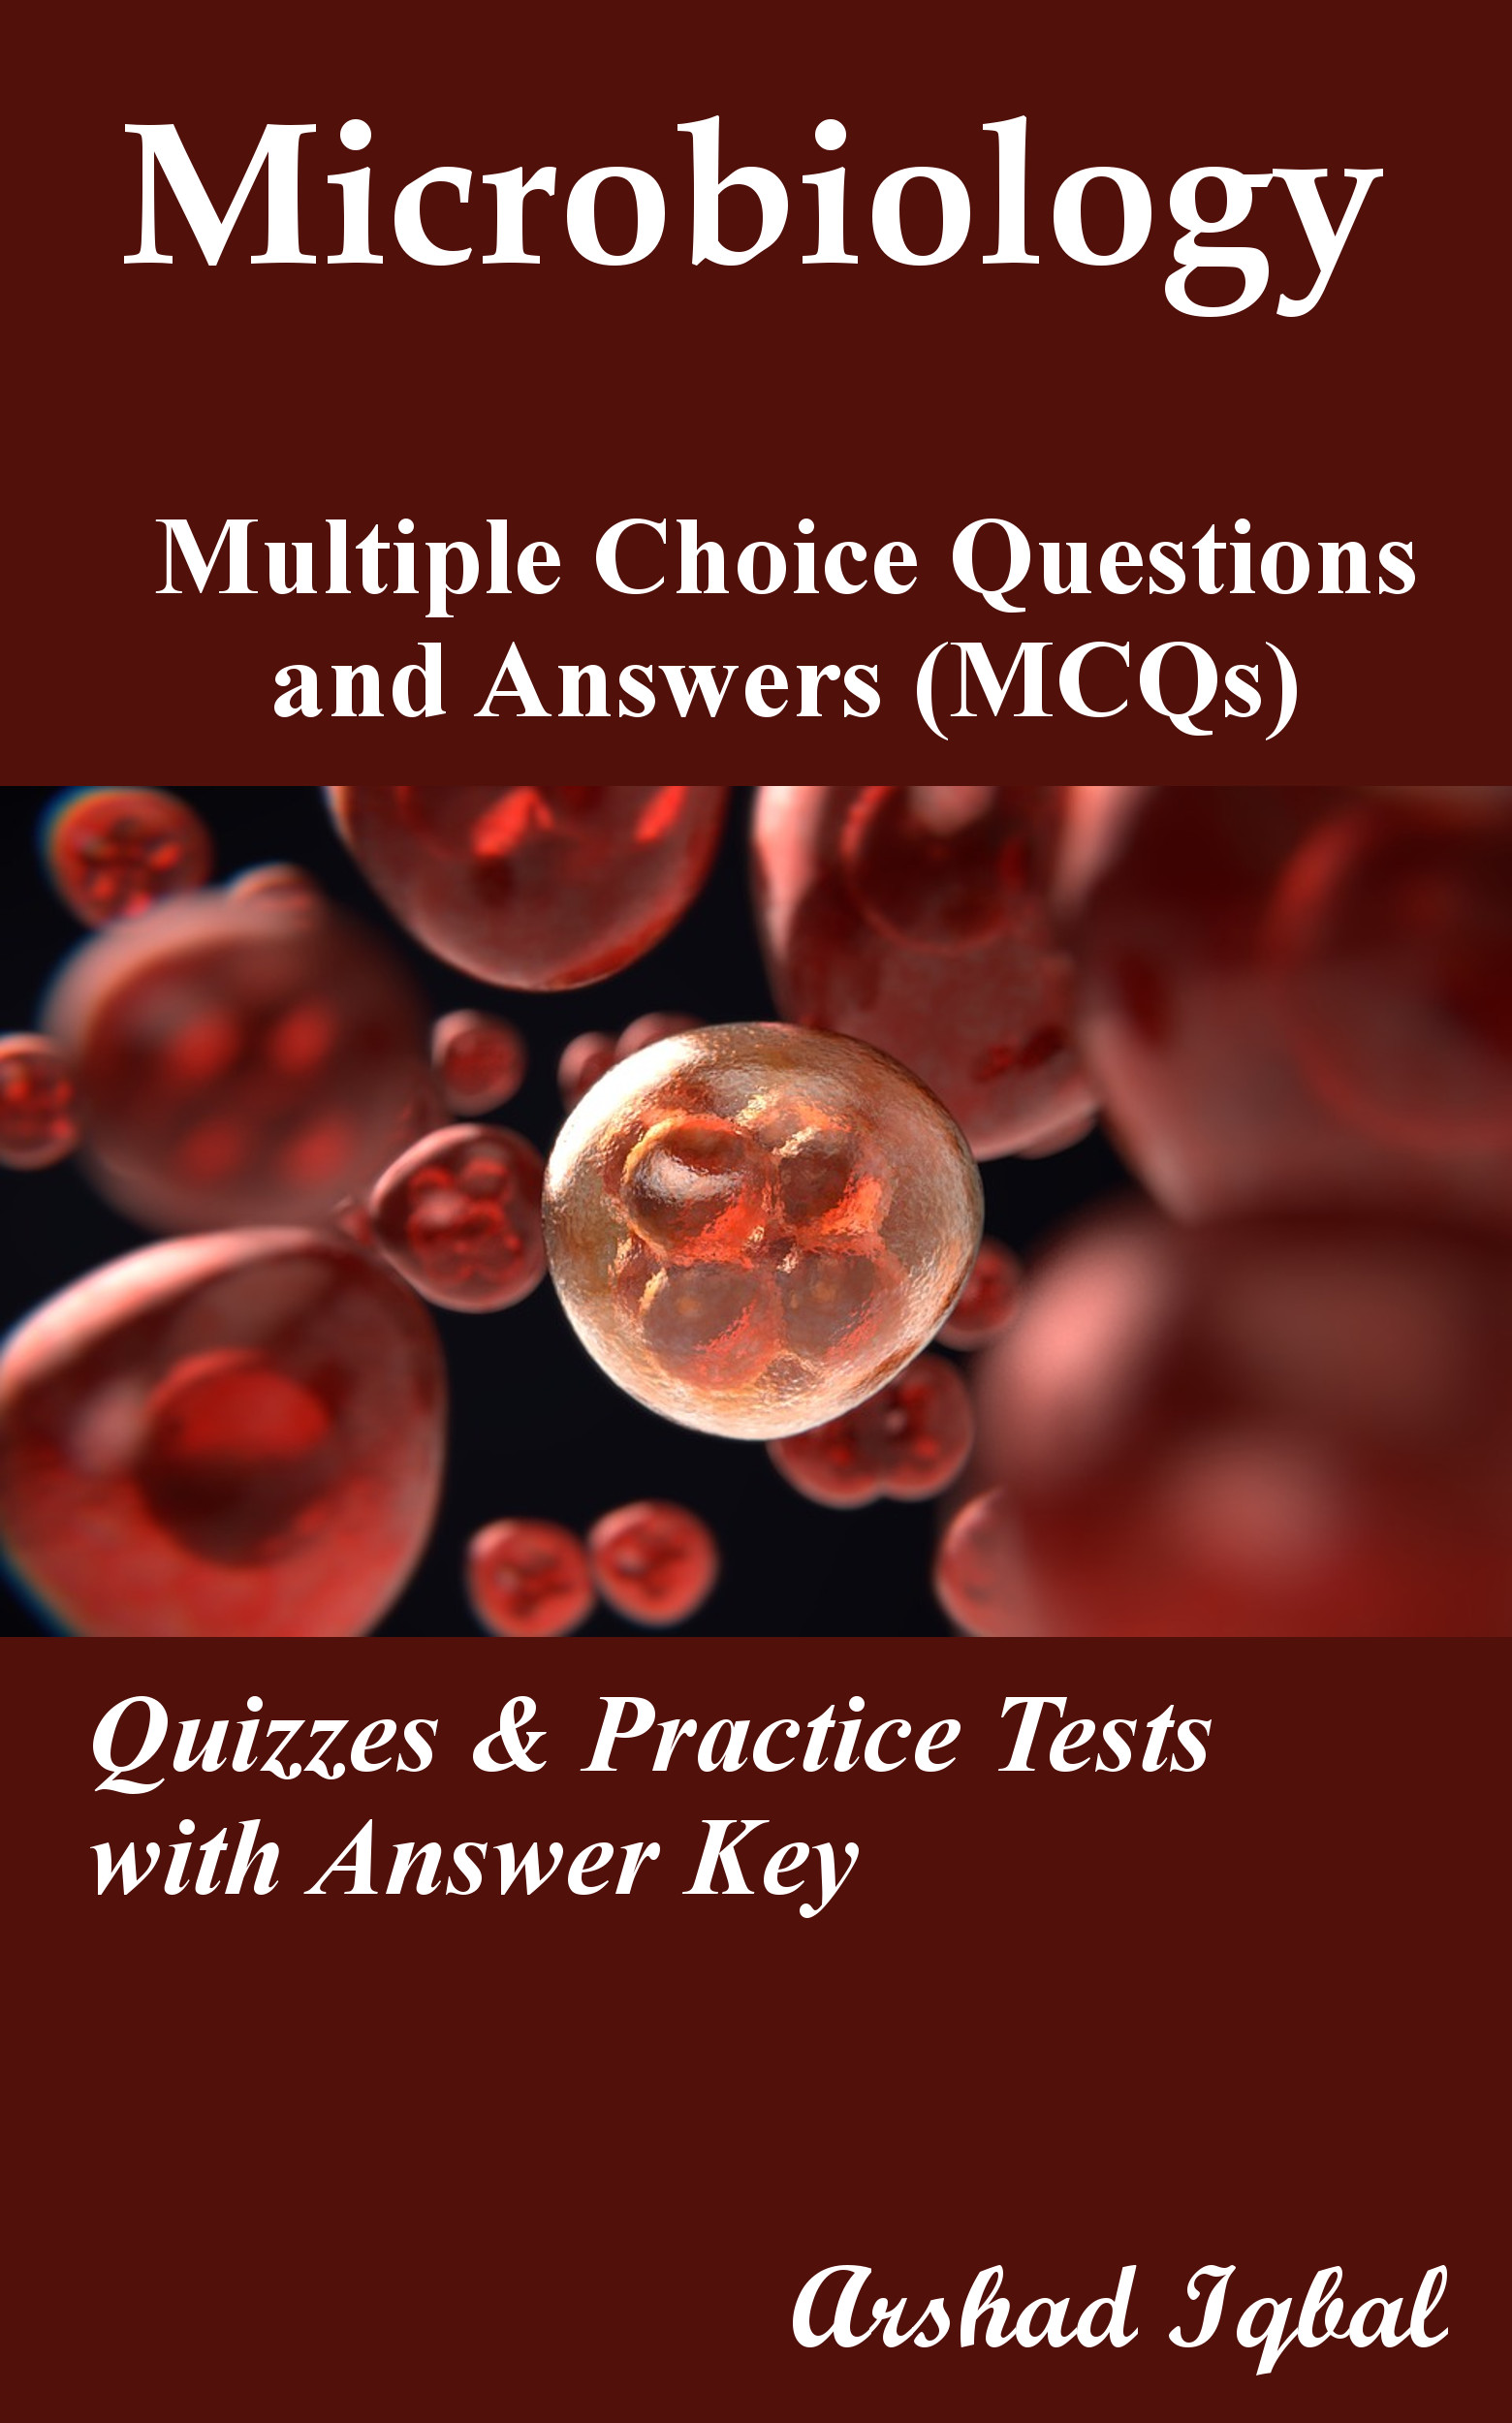 Microbiology Multiple Choice Questions and Answers (MCQs): Quizzes & Practice Tests with Answer Key